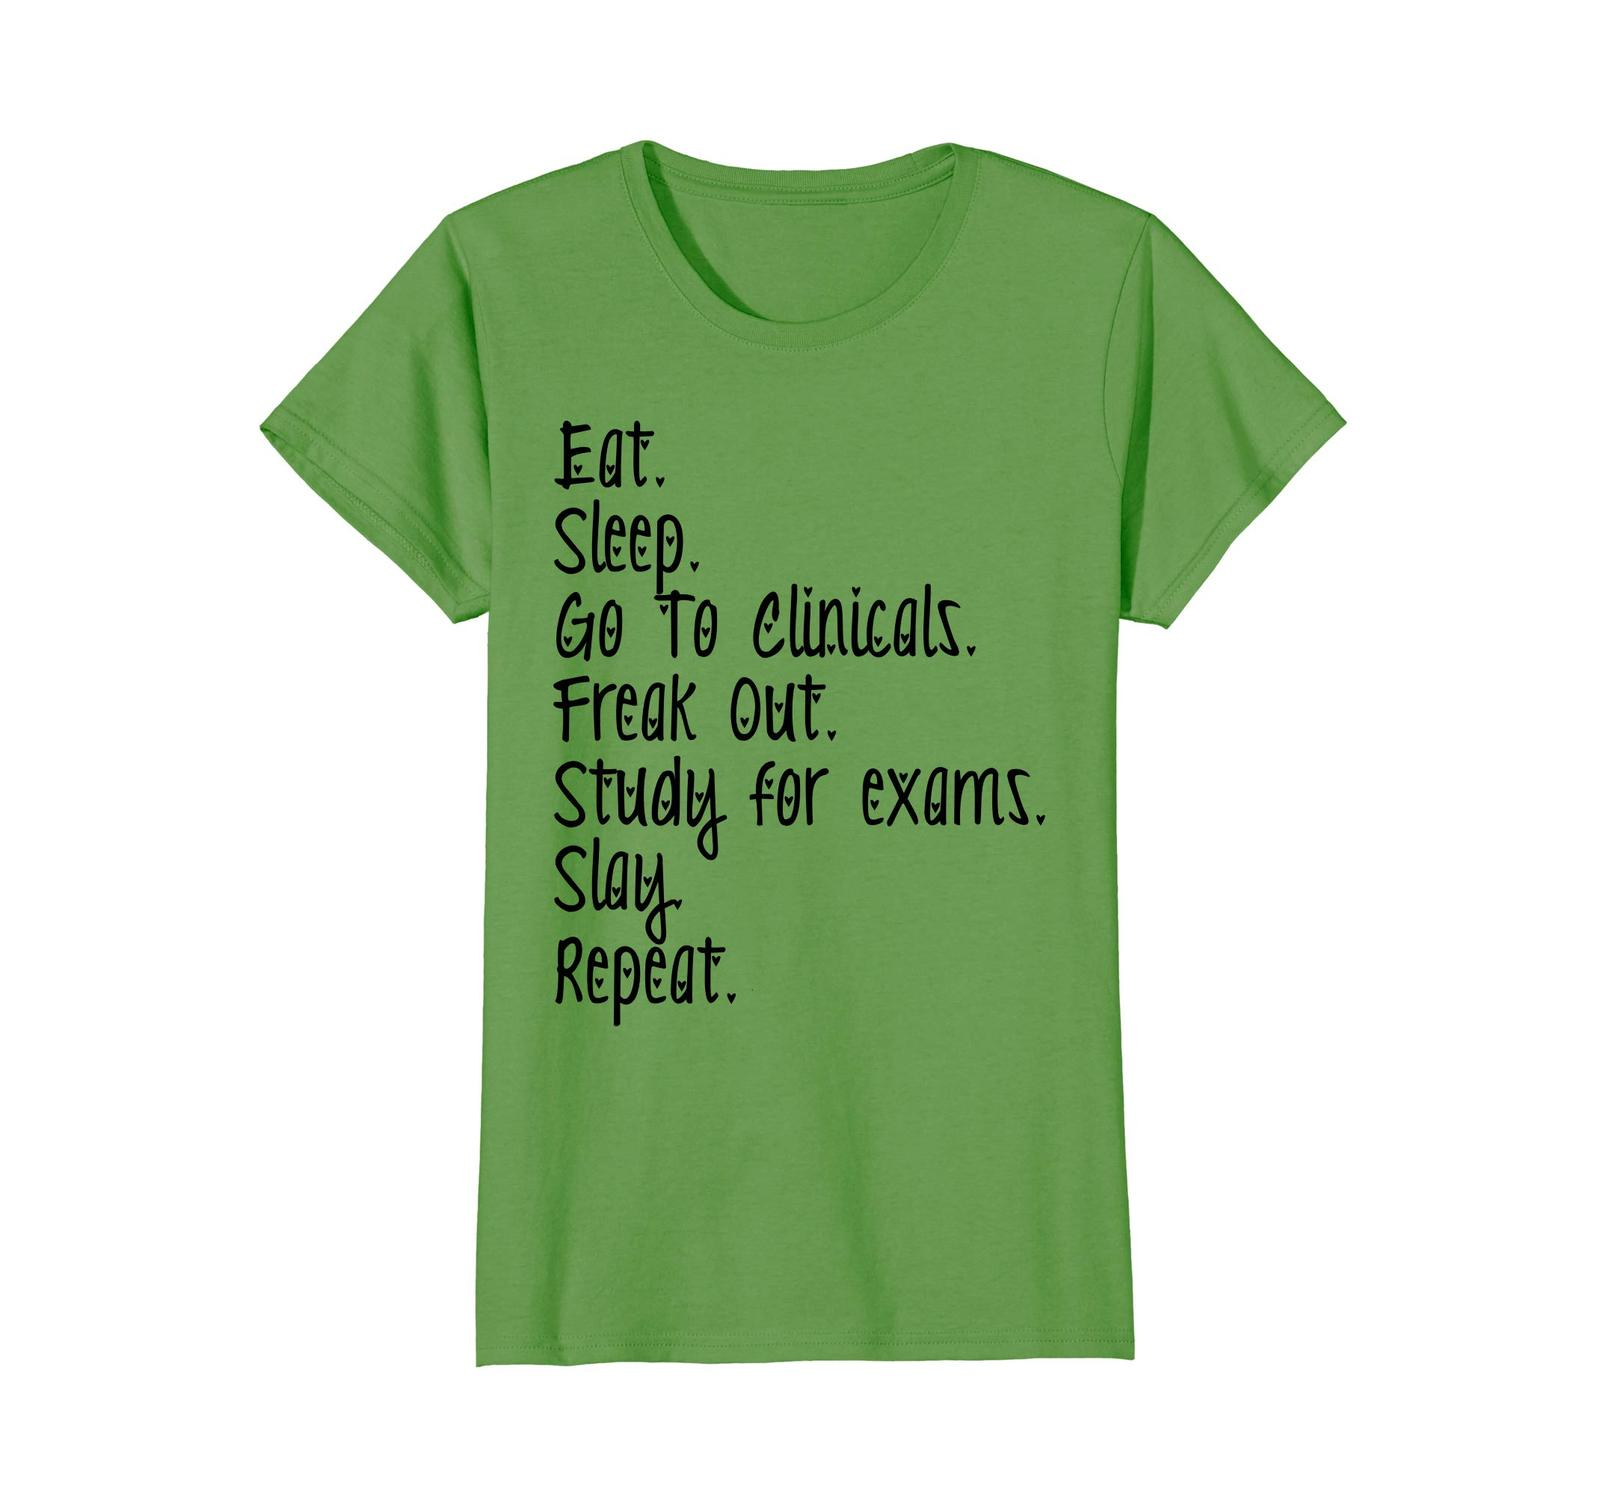 Funny Tee - Eat Sleep Go To Clinicals Freak Out Study4 exams Slay Repeat Wowen